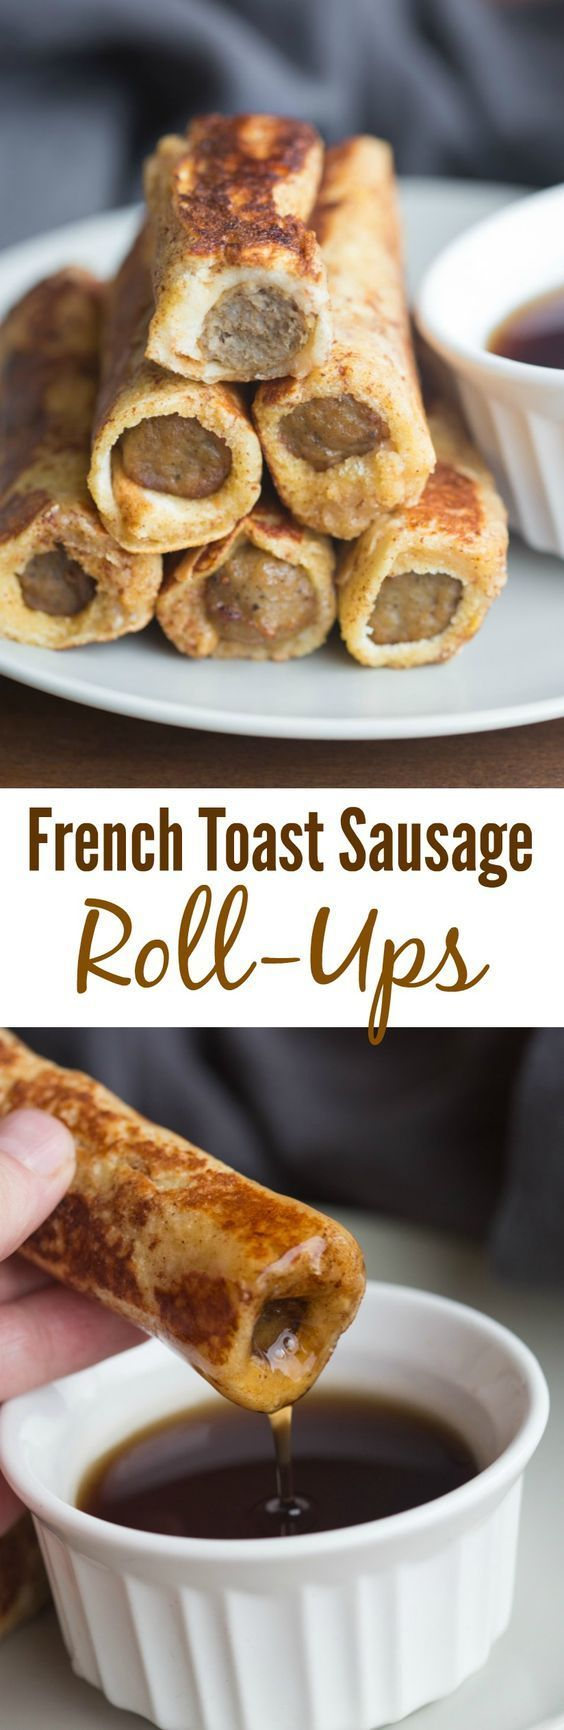 FRENCH TOAST ? Easy to make and fun to eat, these French Toast Sausage Roll-Ups are always popular ...